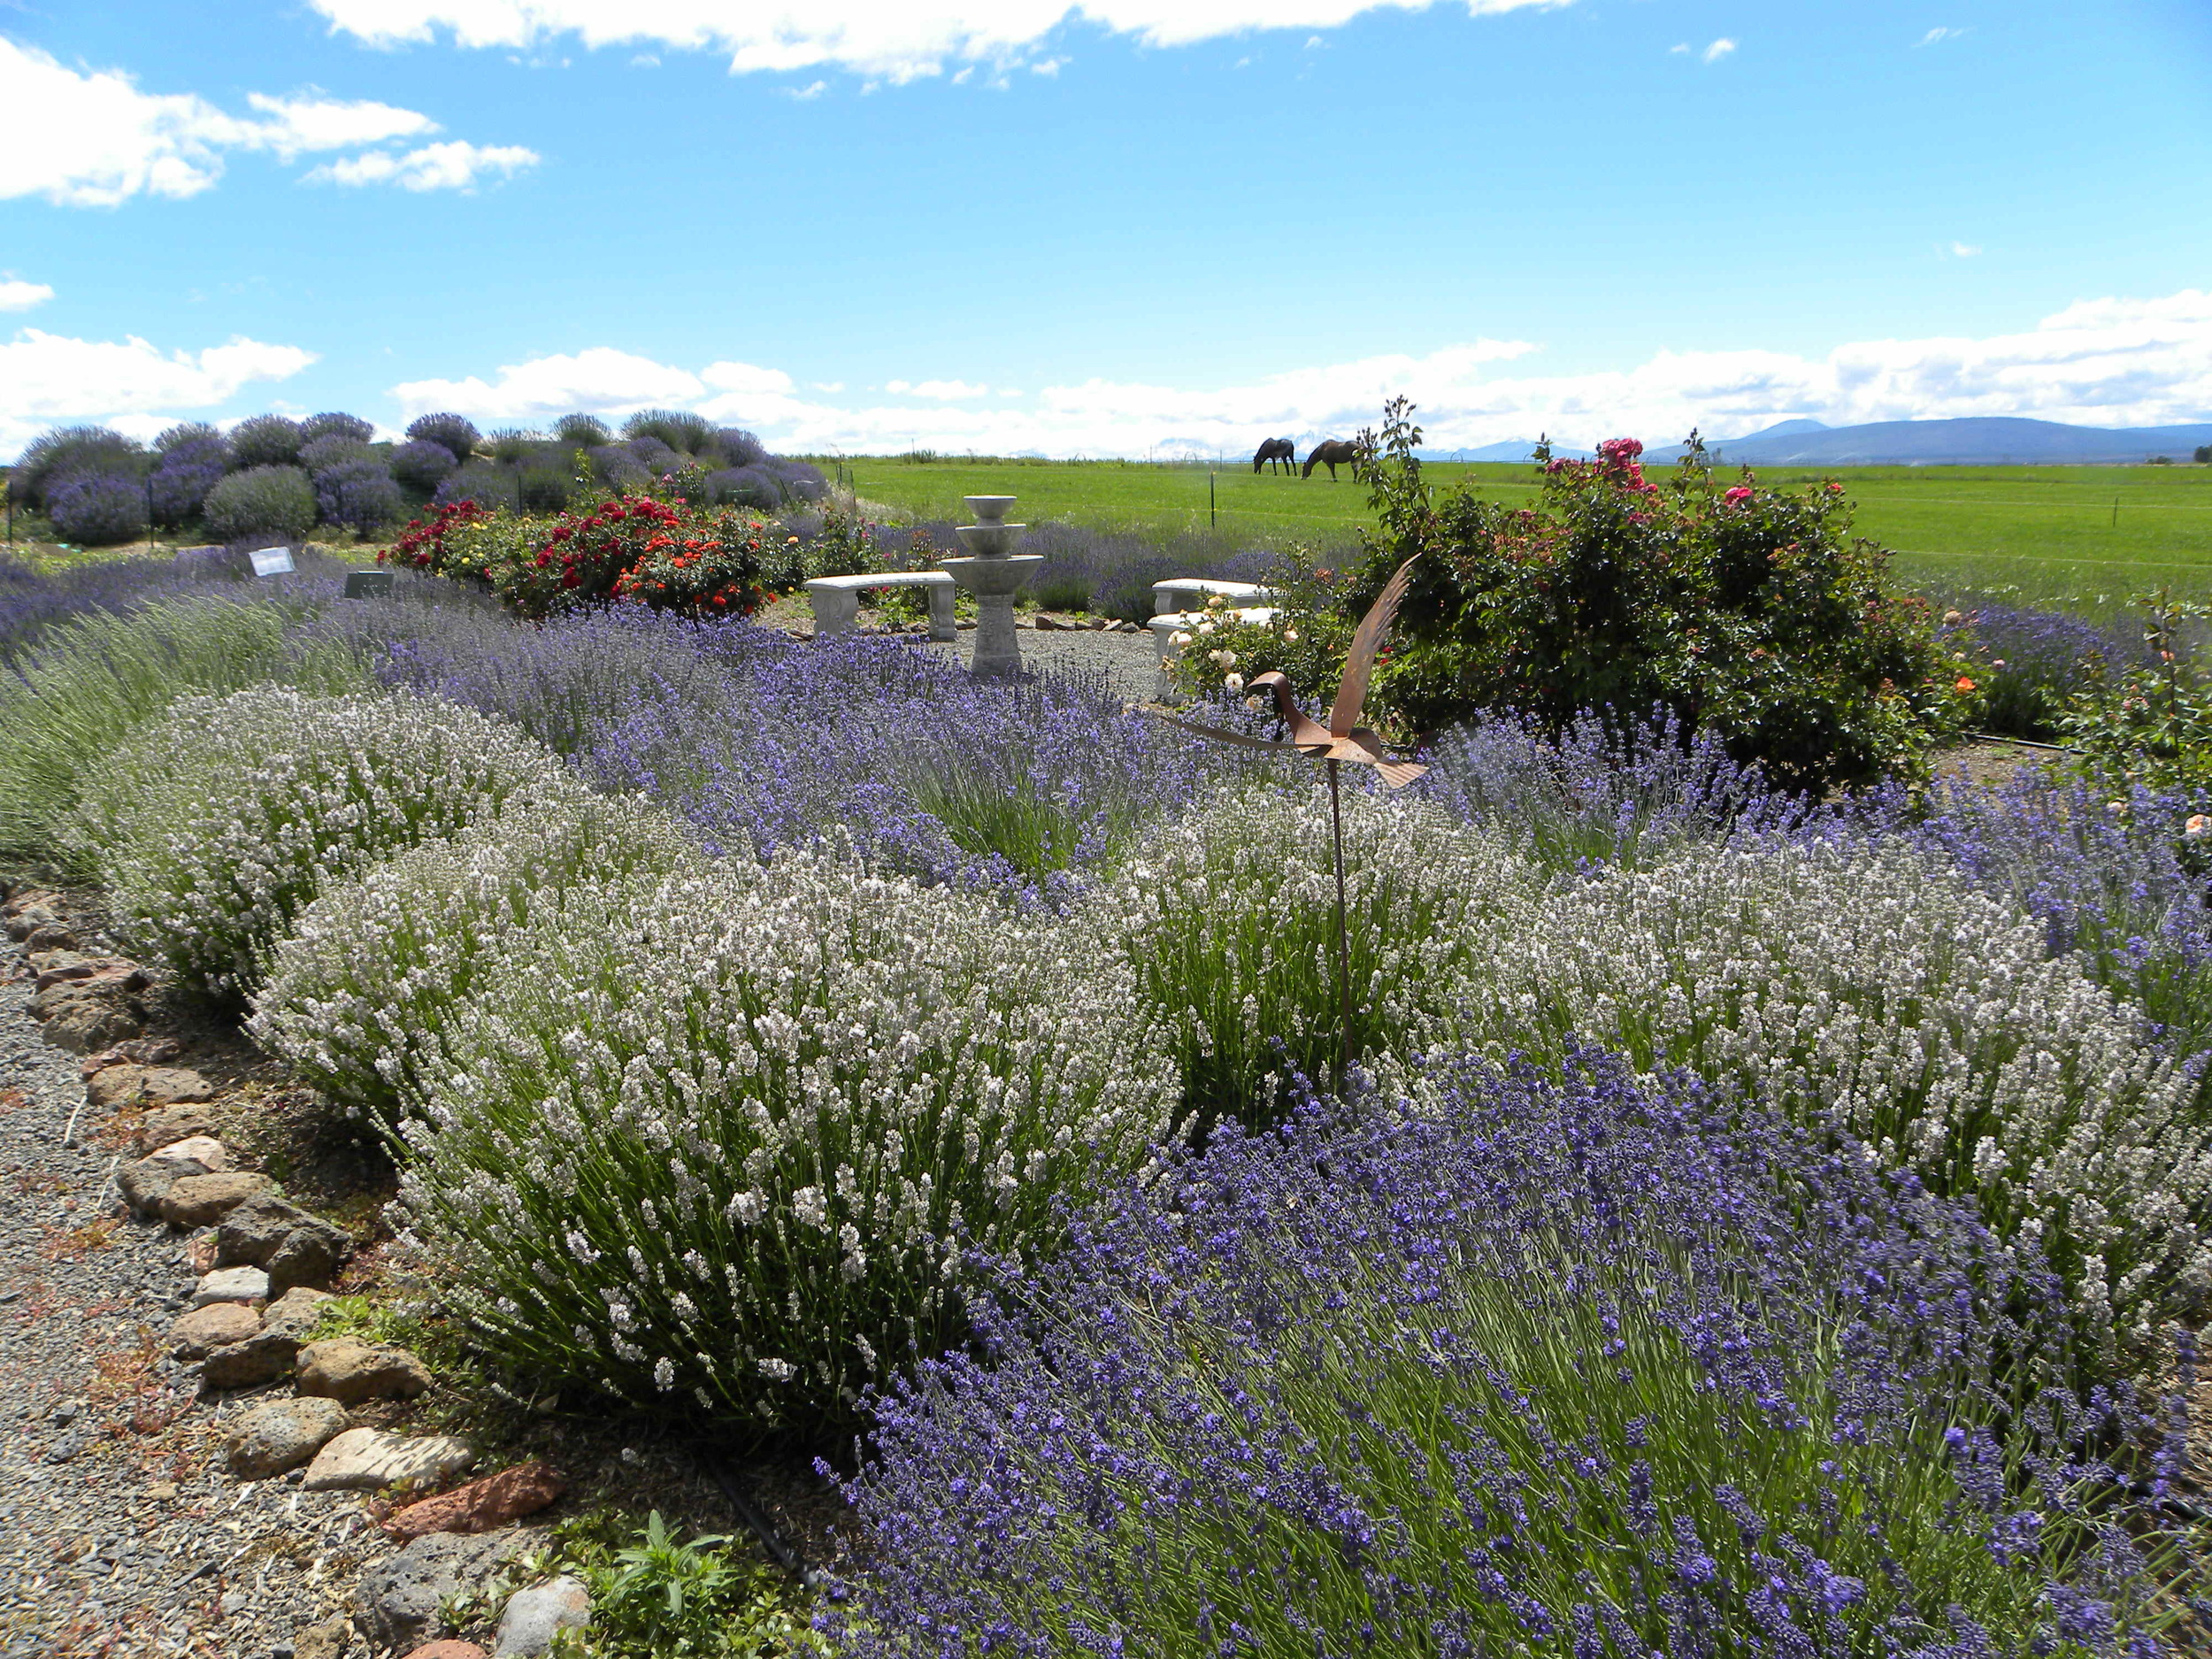 Our display garden where you can see most of our lavender varieties. We have over 115 varieties in total on our farm!!